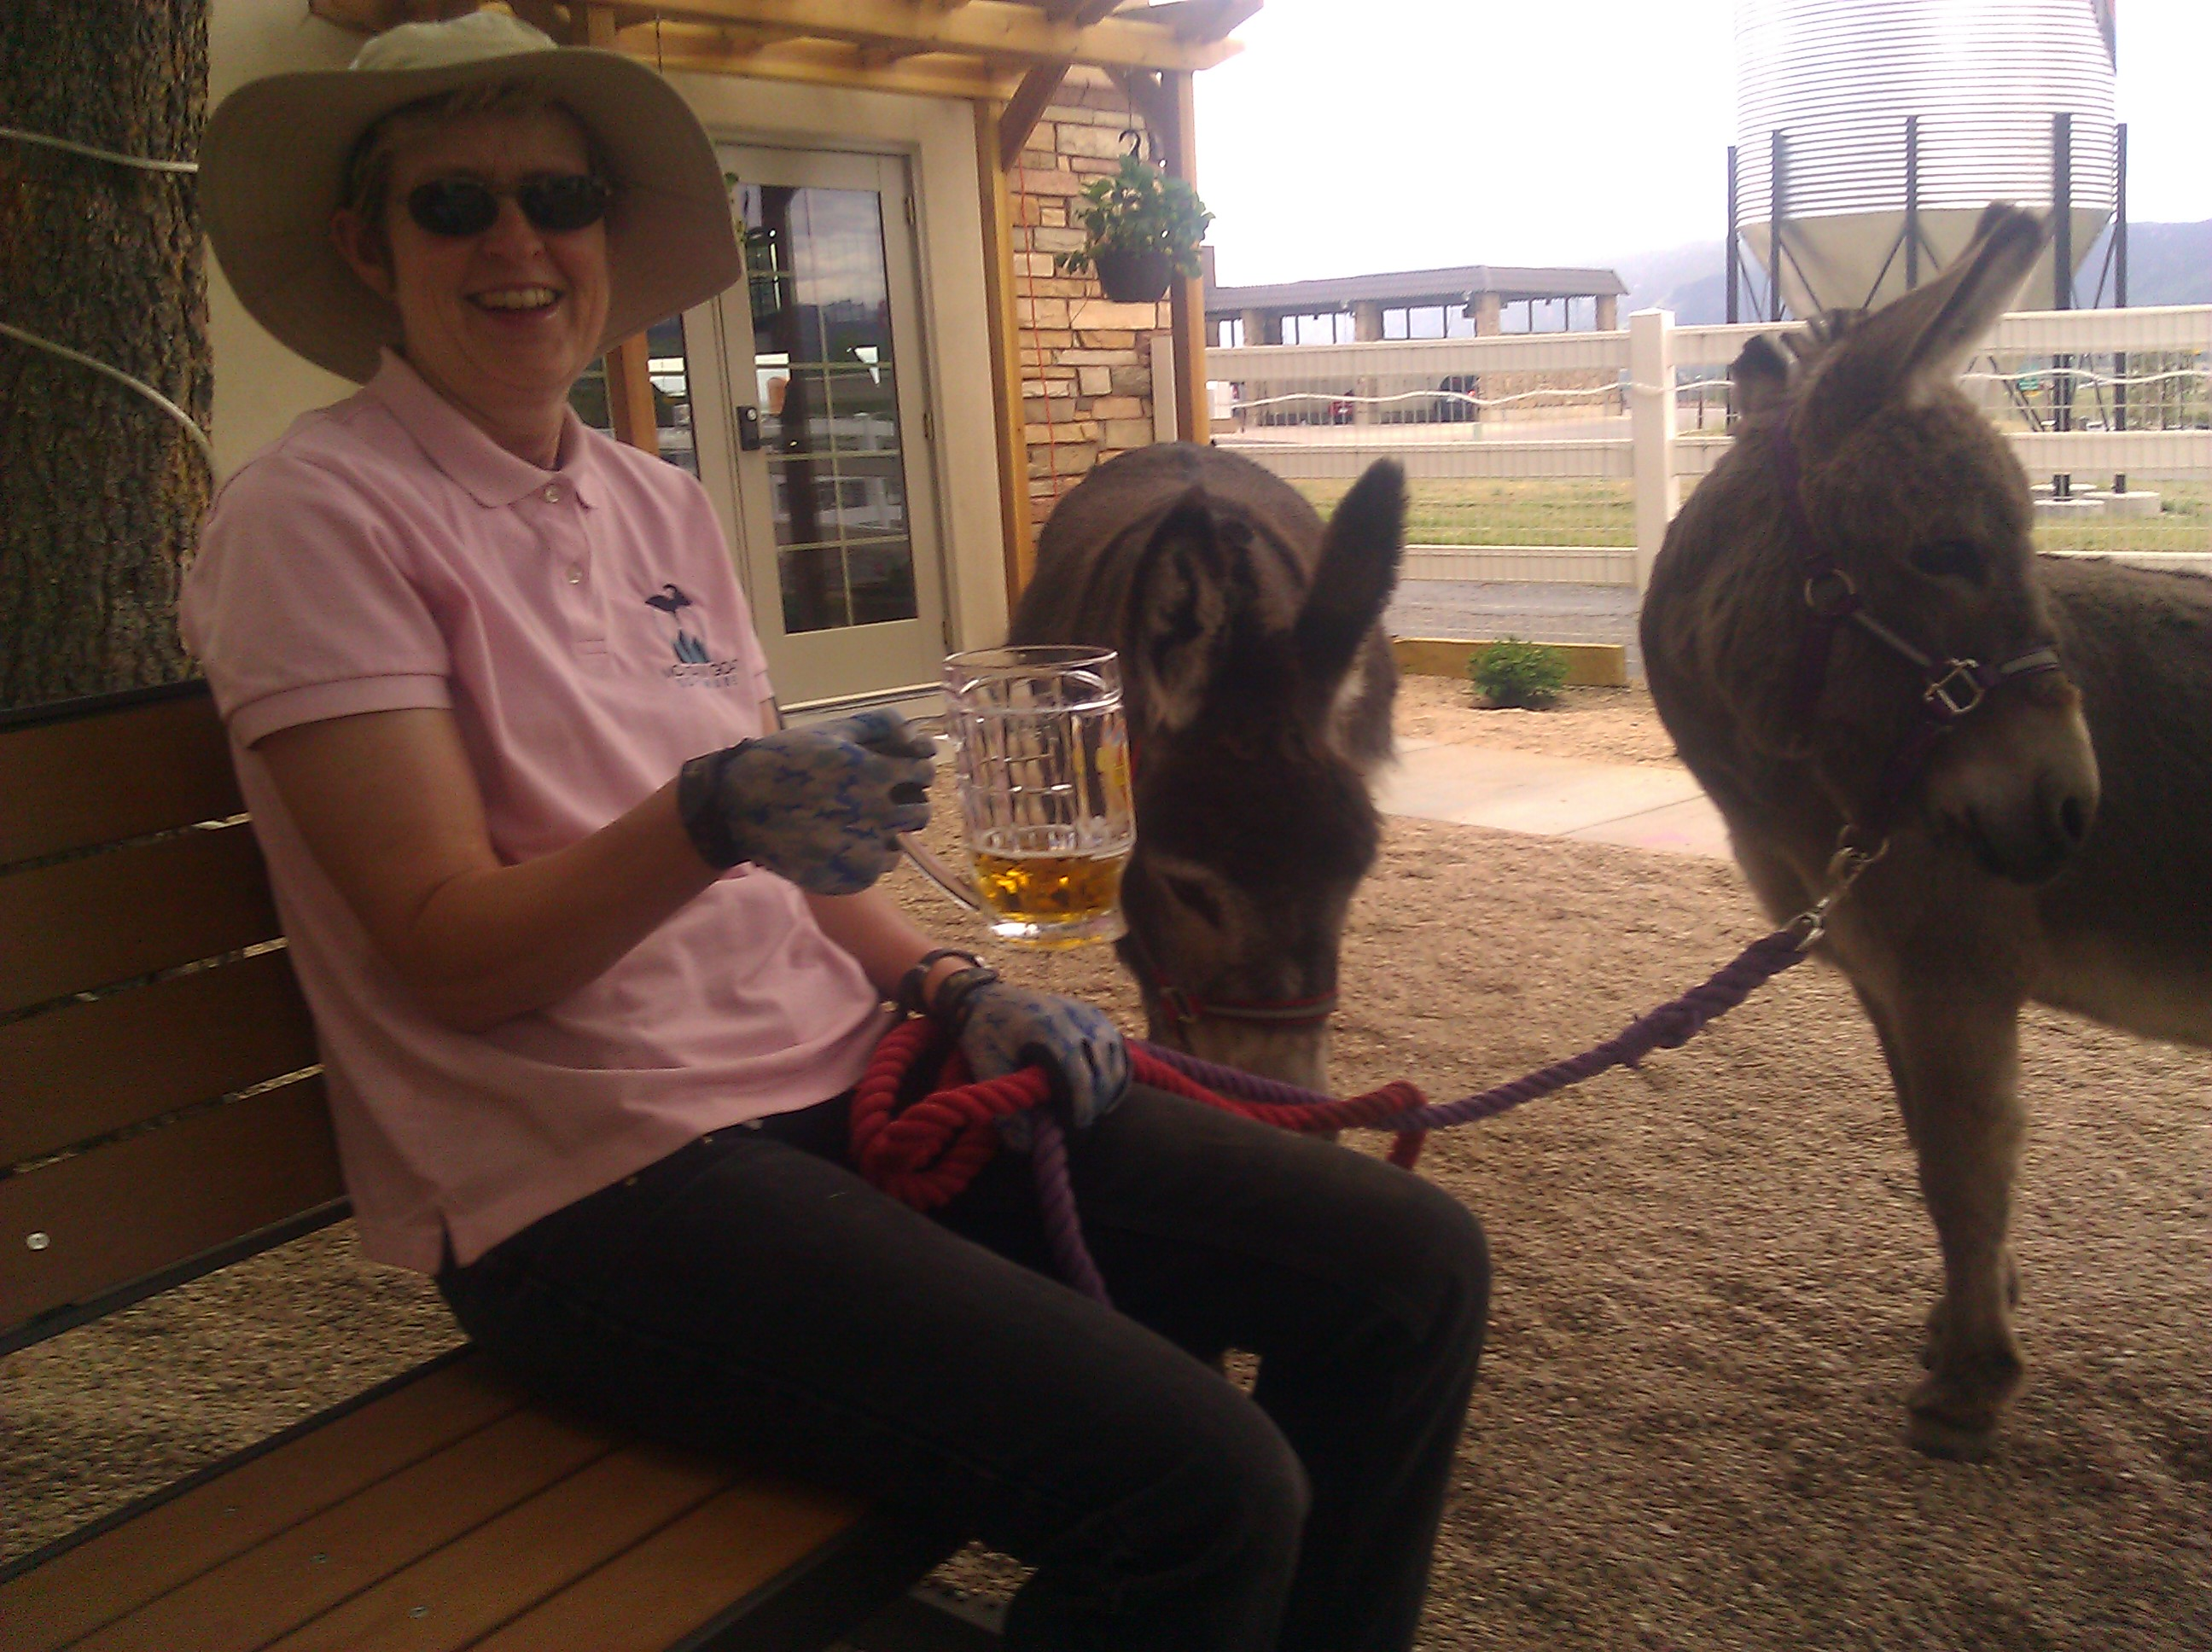 Donkeys in a Bar